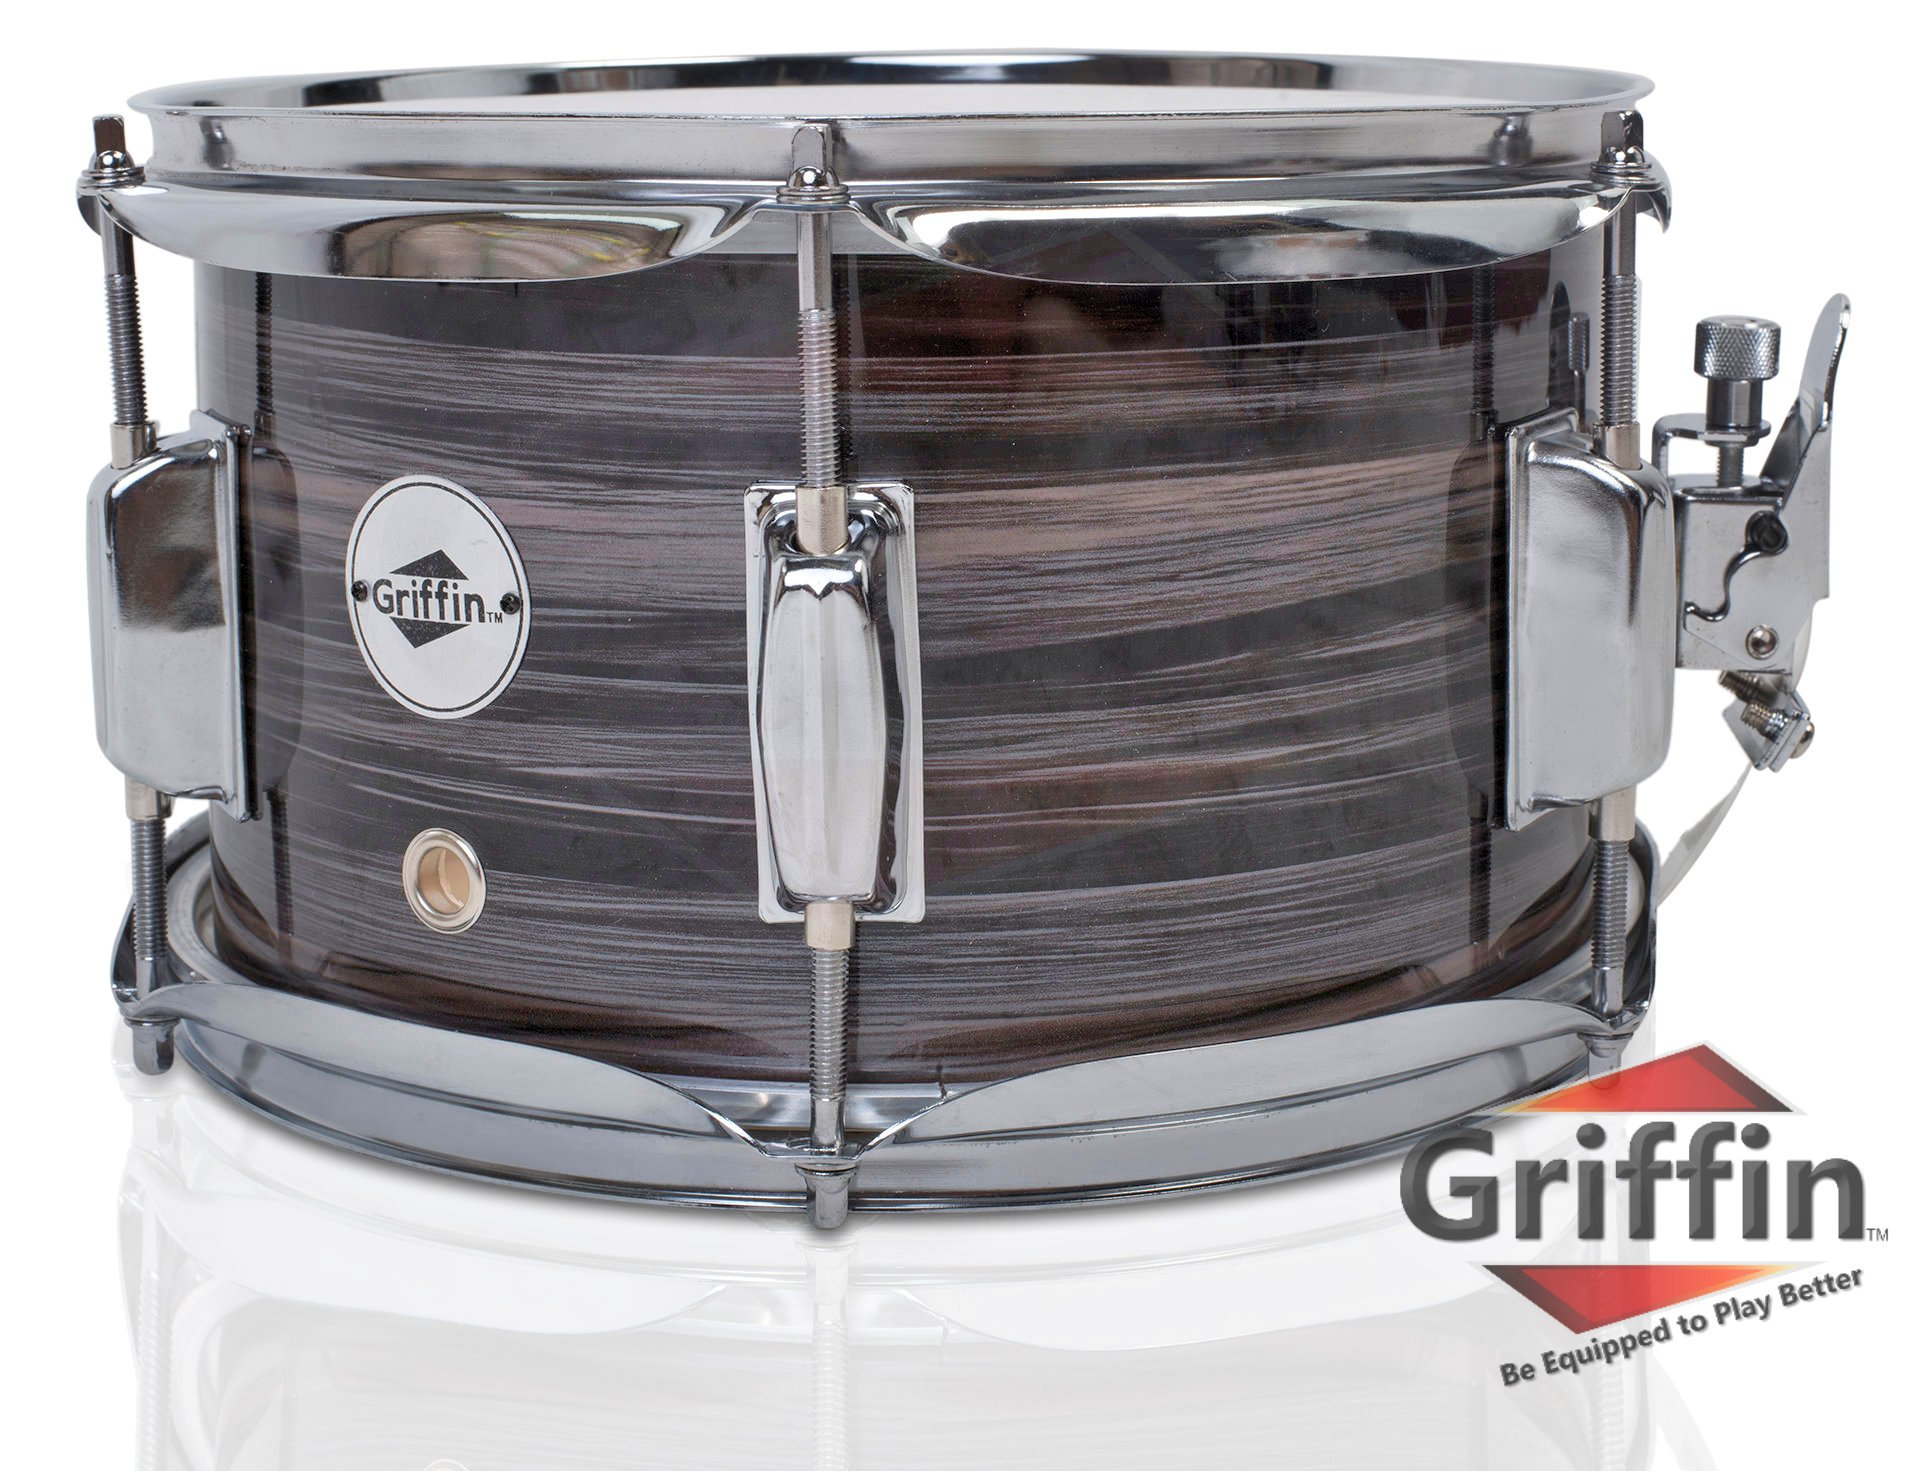 Popcorn Snare Drum by Griffin | Firecracker 10'' x 6'' Poplar Shell with Zebra Wood PVC|Soprano Concert Percussion Musical Instrument with Drummers Key and Deluxe Snare Strainer|Beginner & Professional